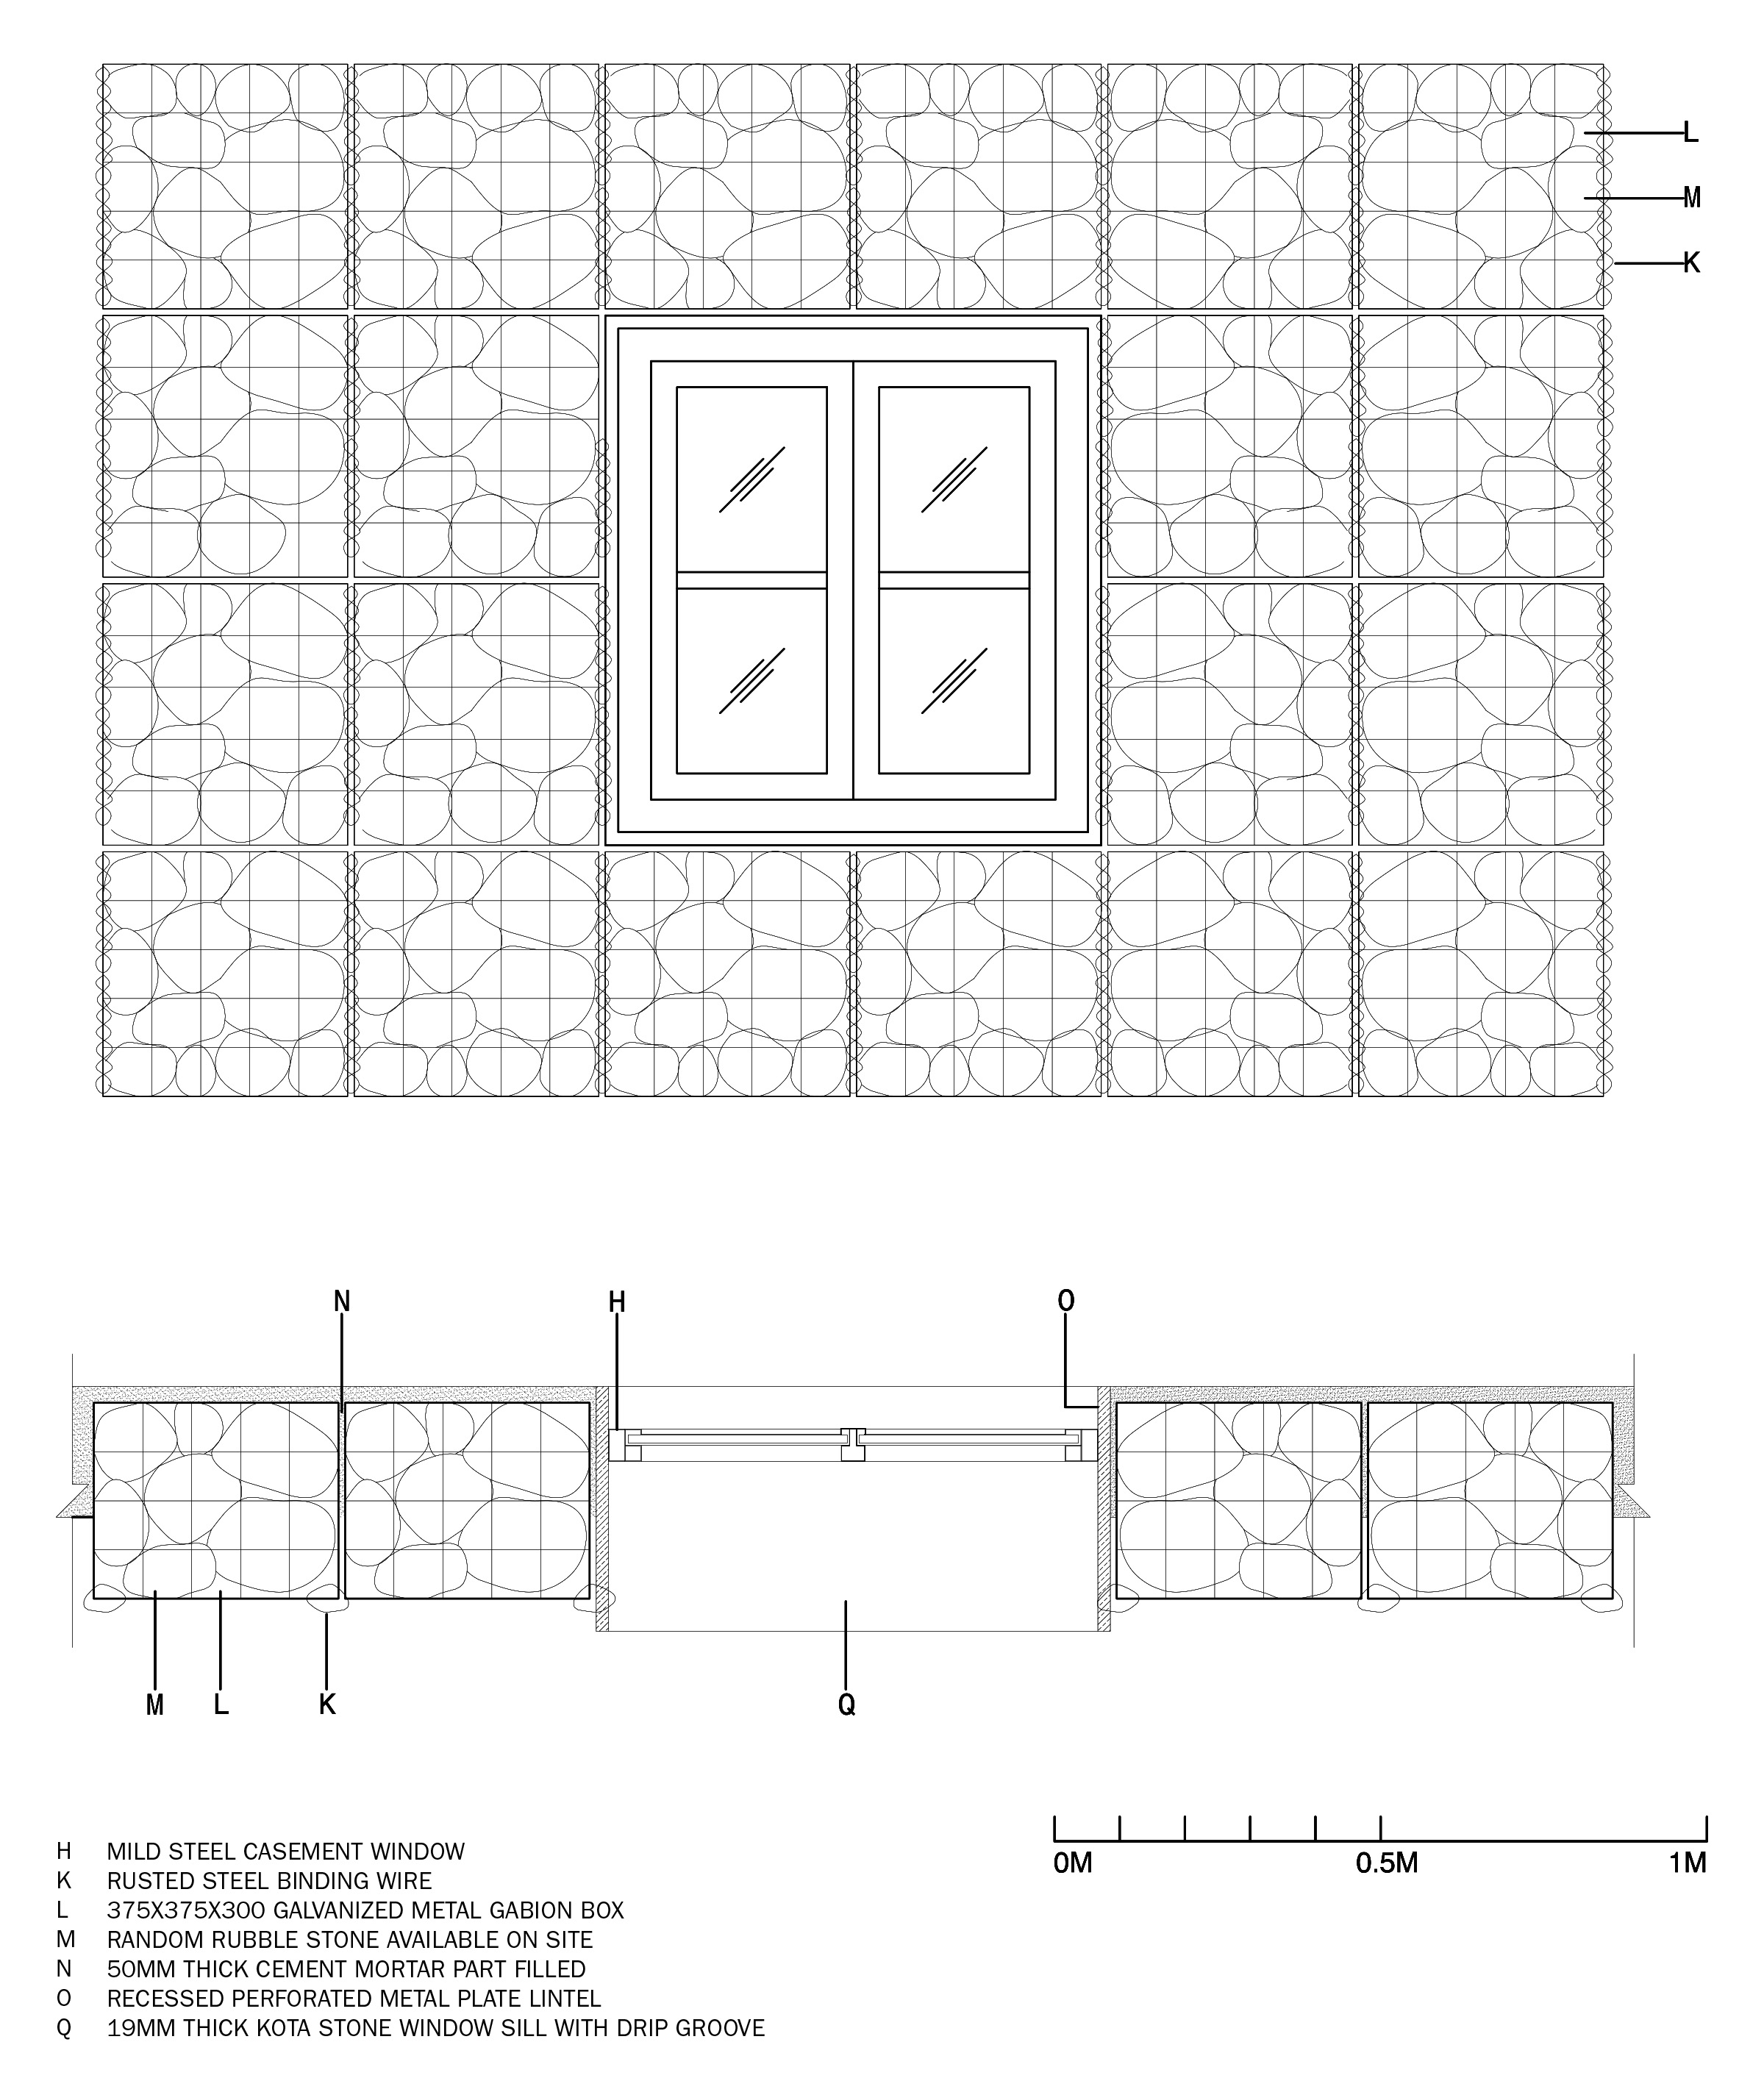 5-1607407403-RESORT_Gabian Wall Detail (Plan & Elevation).jpg